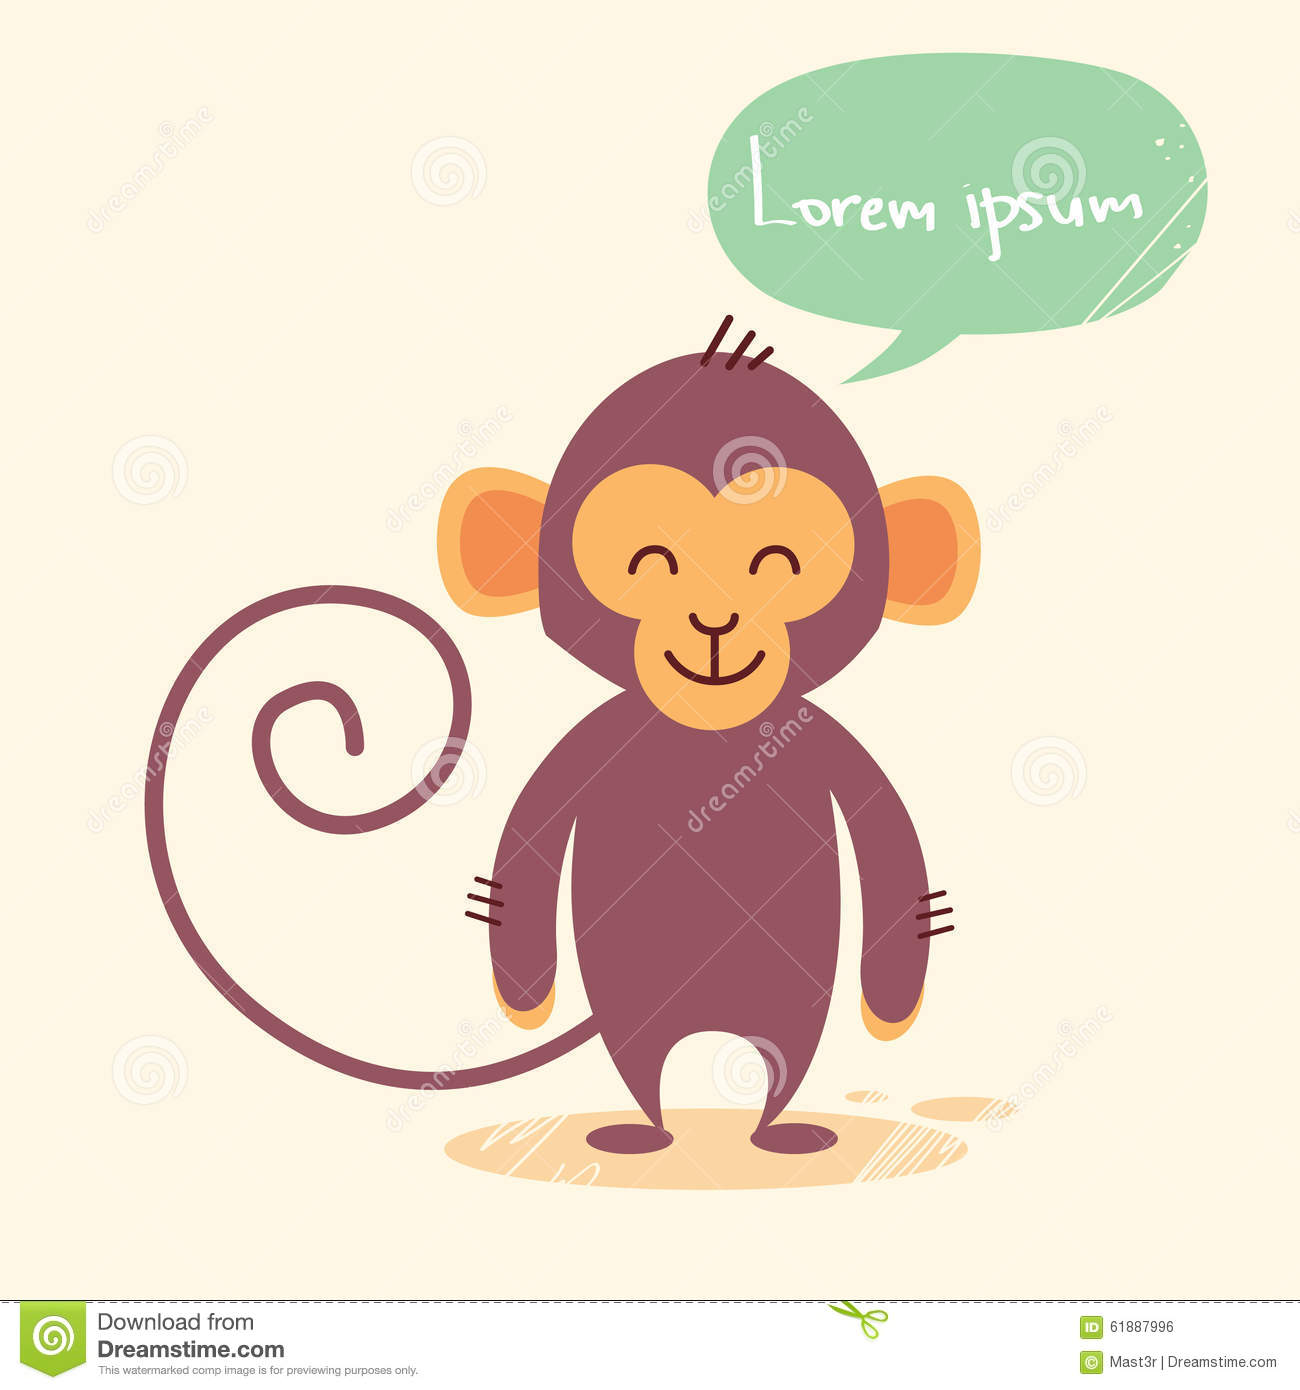 Cute Monkey Cartoon Chat Bubble Drawing Stock Vector Illustration